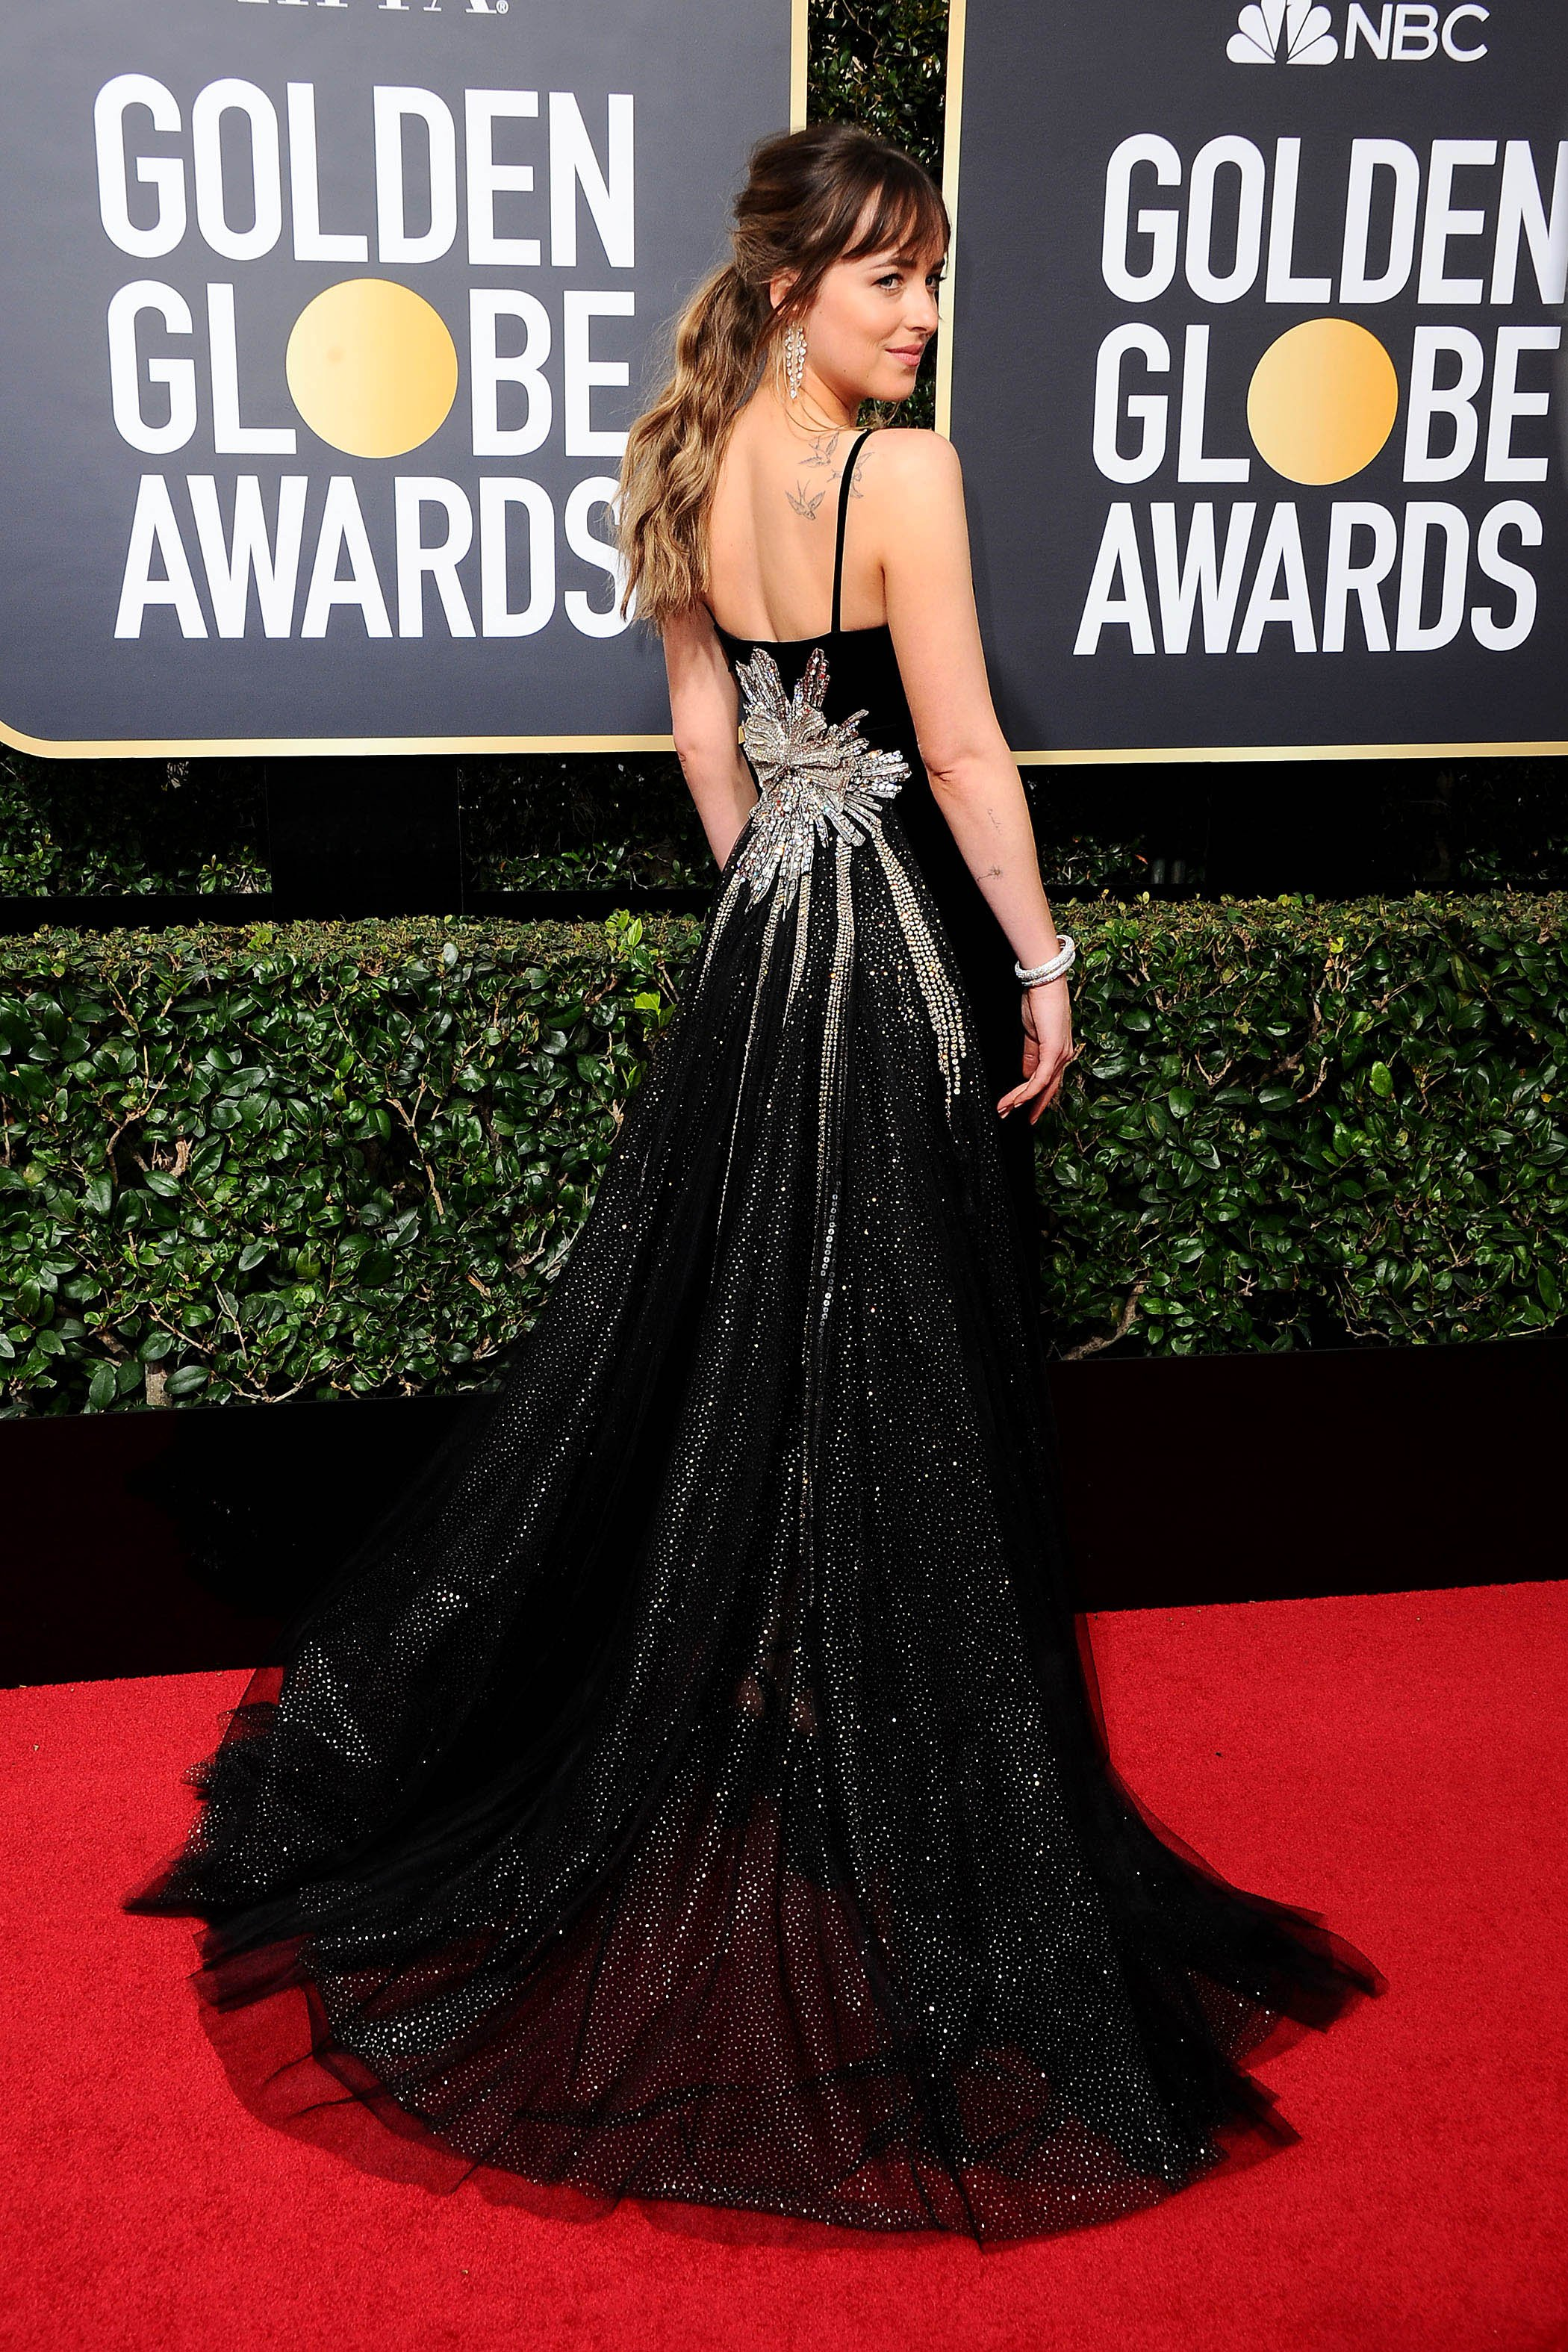 , Beverly Hills, CA -20180107 - The 75th Golden Globe Awards - Arrivals at The Beverly Hilton  -PICTURED: Dakota Johnson -, Image: 359491349, License: Rights-managed, Restrictions: , Model Release: no, Credit line: Profimedia, INSTAR Images